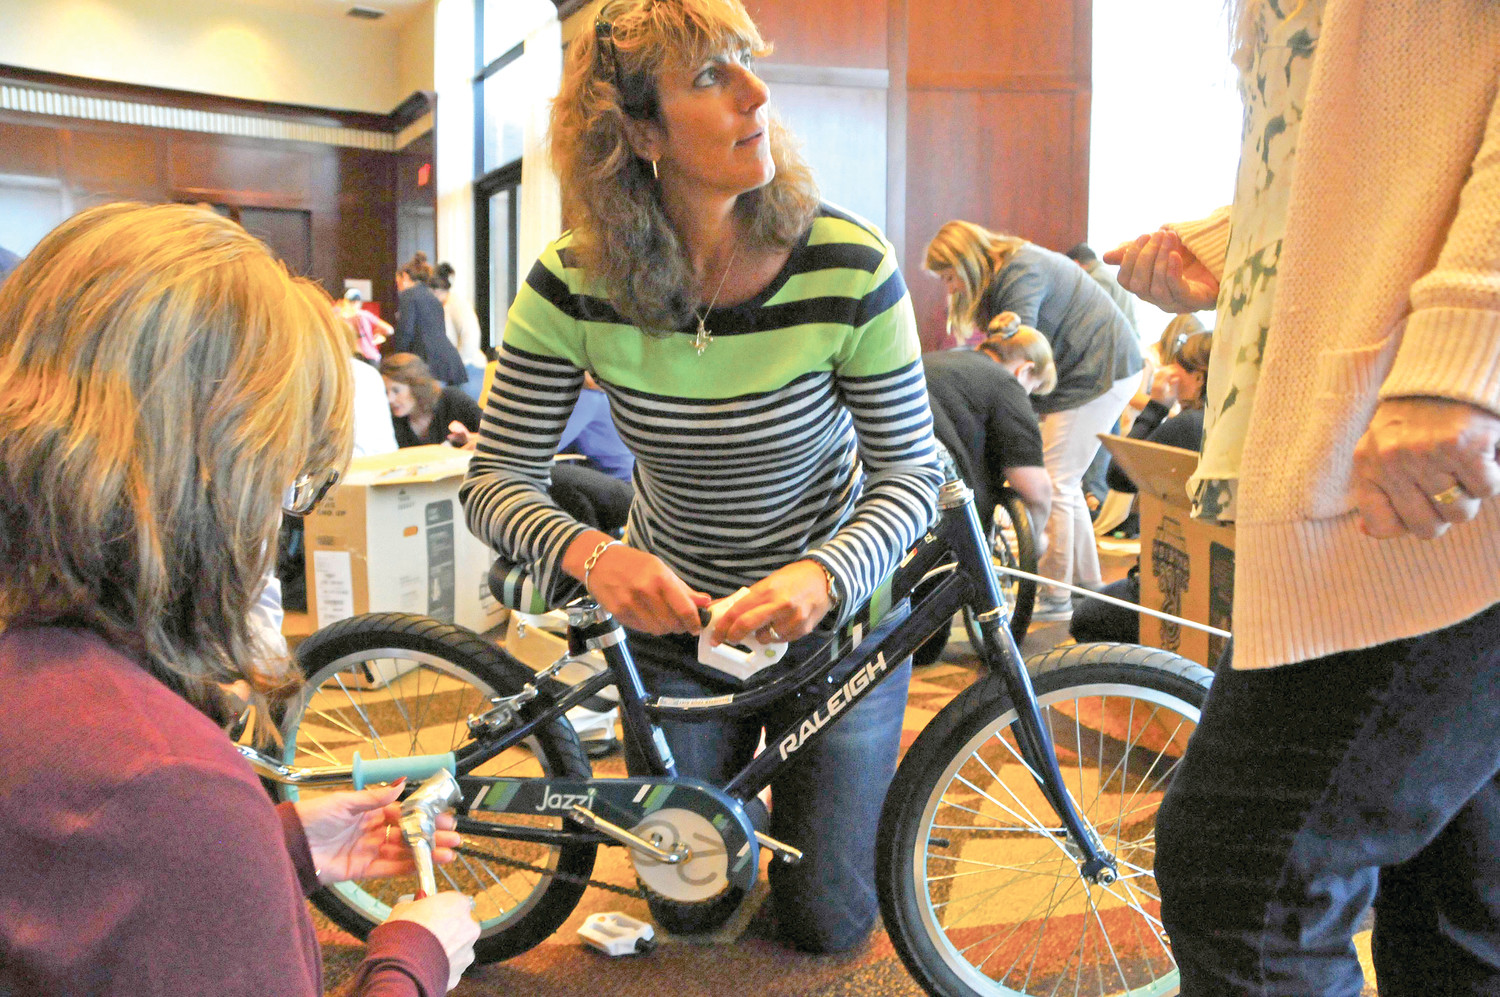 ALL ABOUT TEAMWORK: Employees from Citizen's Bank work on assembling a bike.